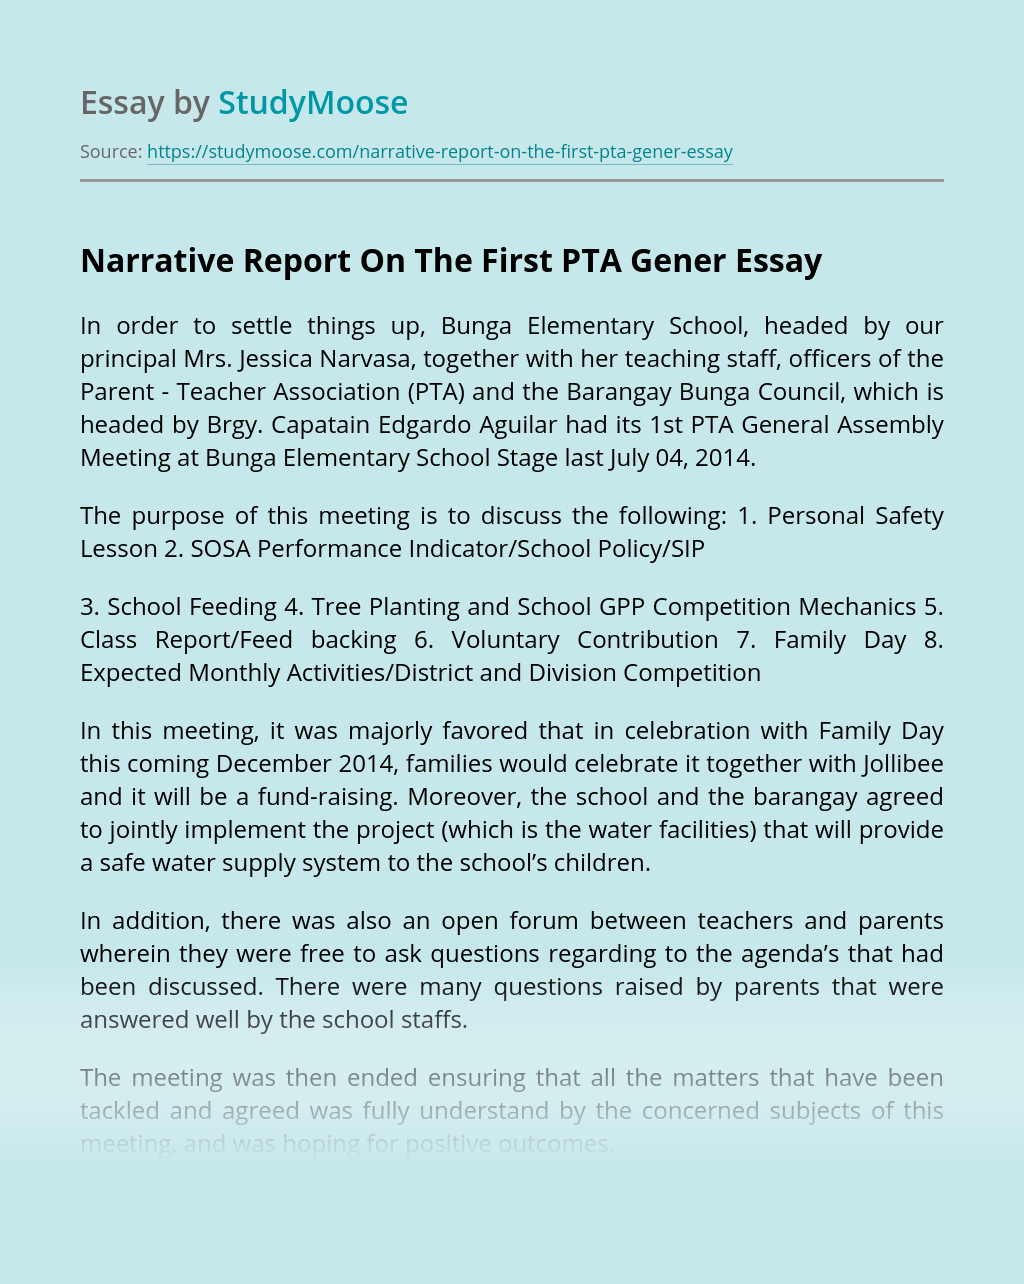 Narrative Report On The First PTA Gener